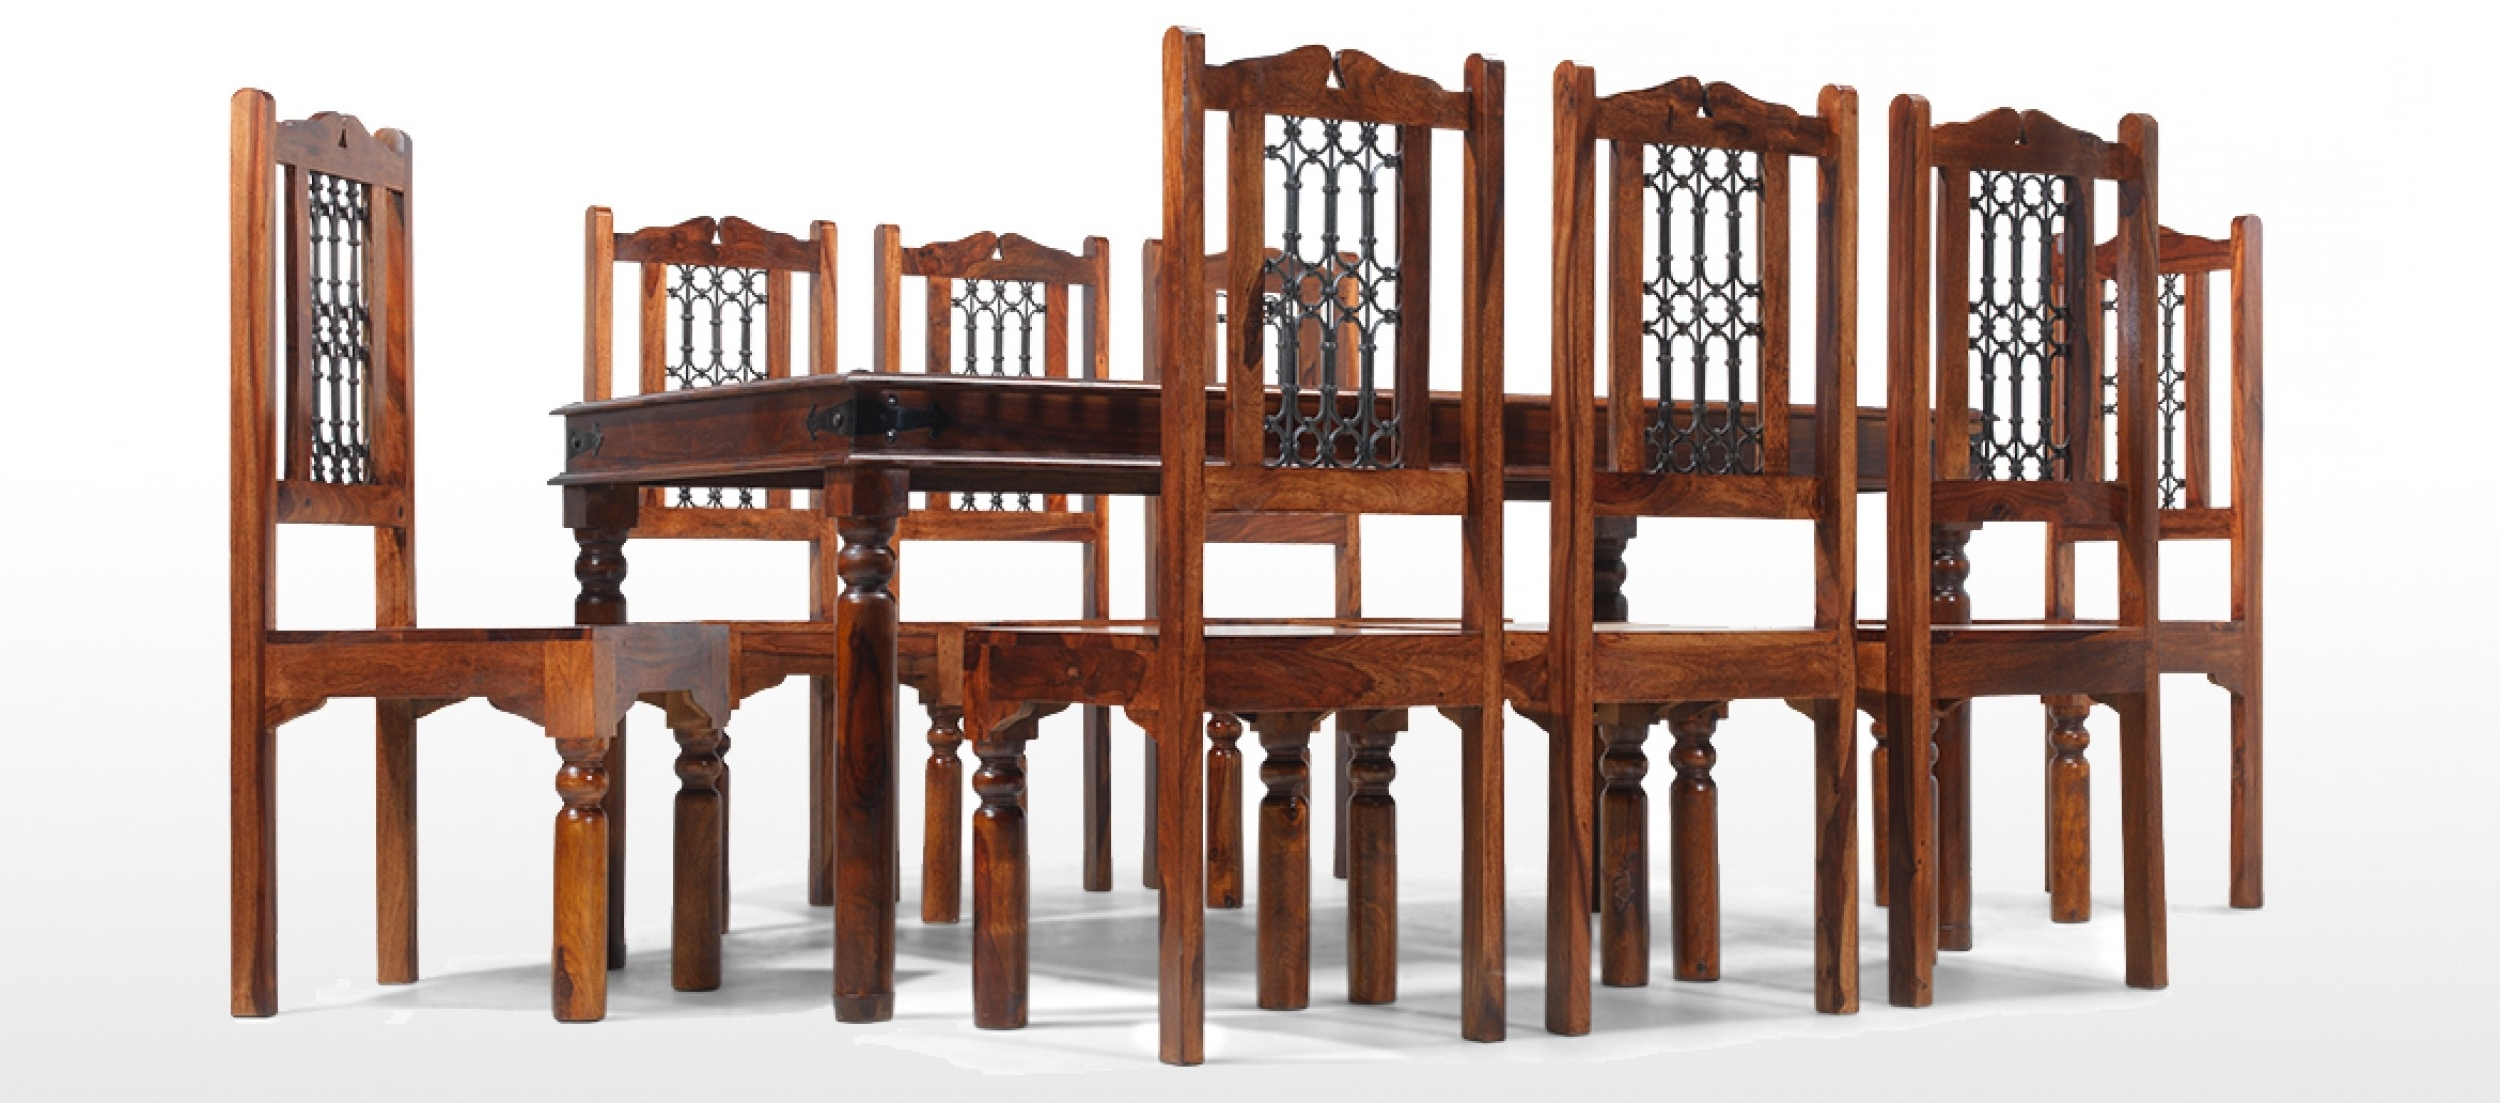 Quercus Living Pertaining To Dining Tables 8 Chairs (View 18 of 25)